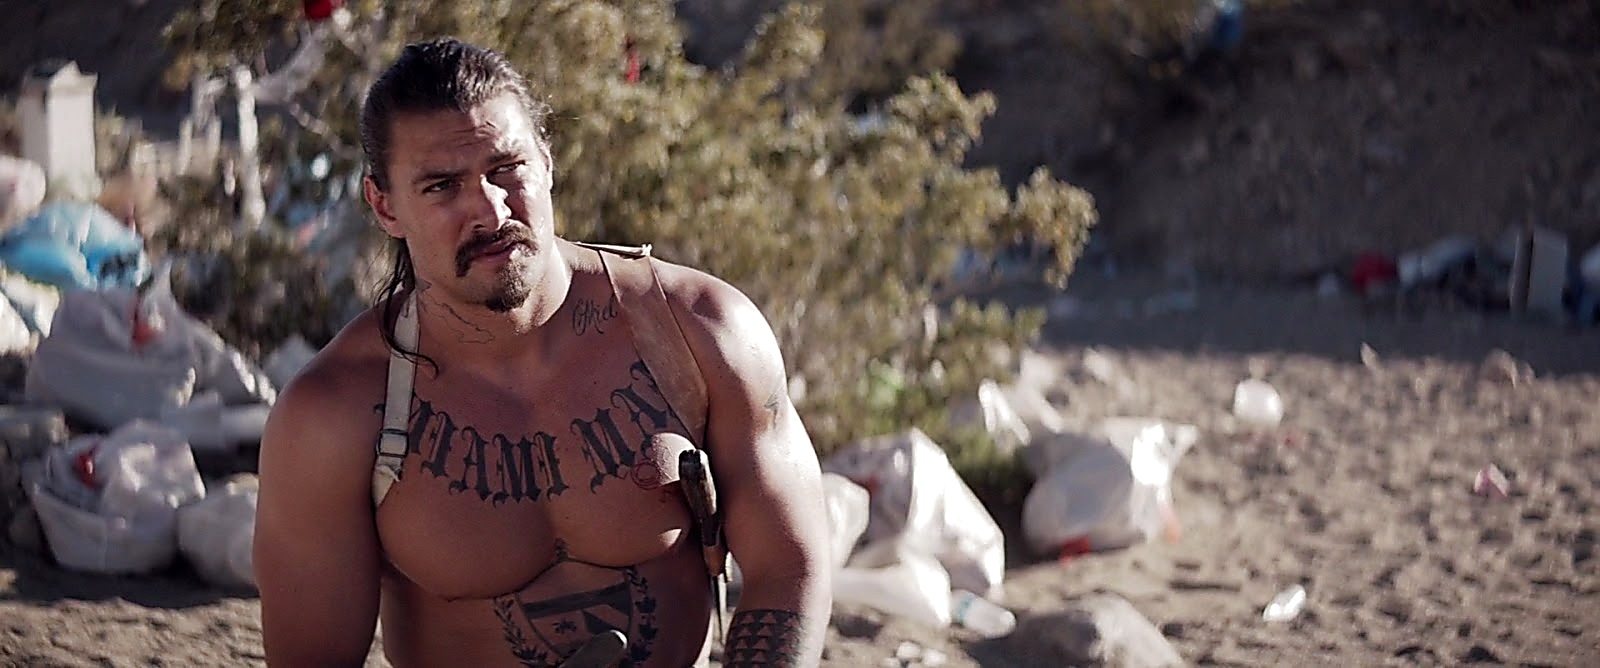 Jason Momoa sexy shirtless scene June 23, 2017, 1pm